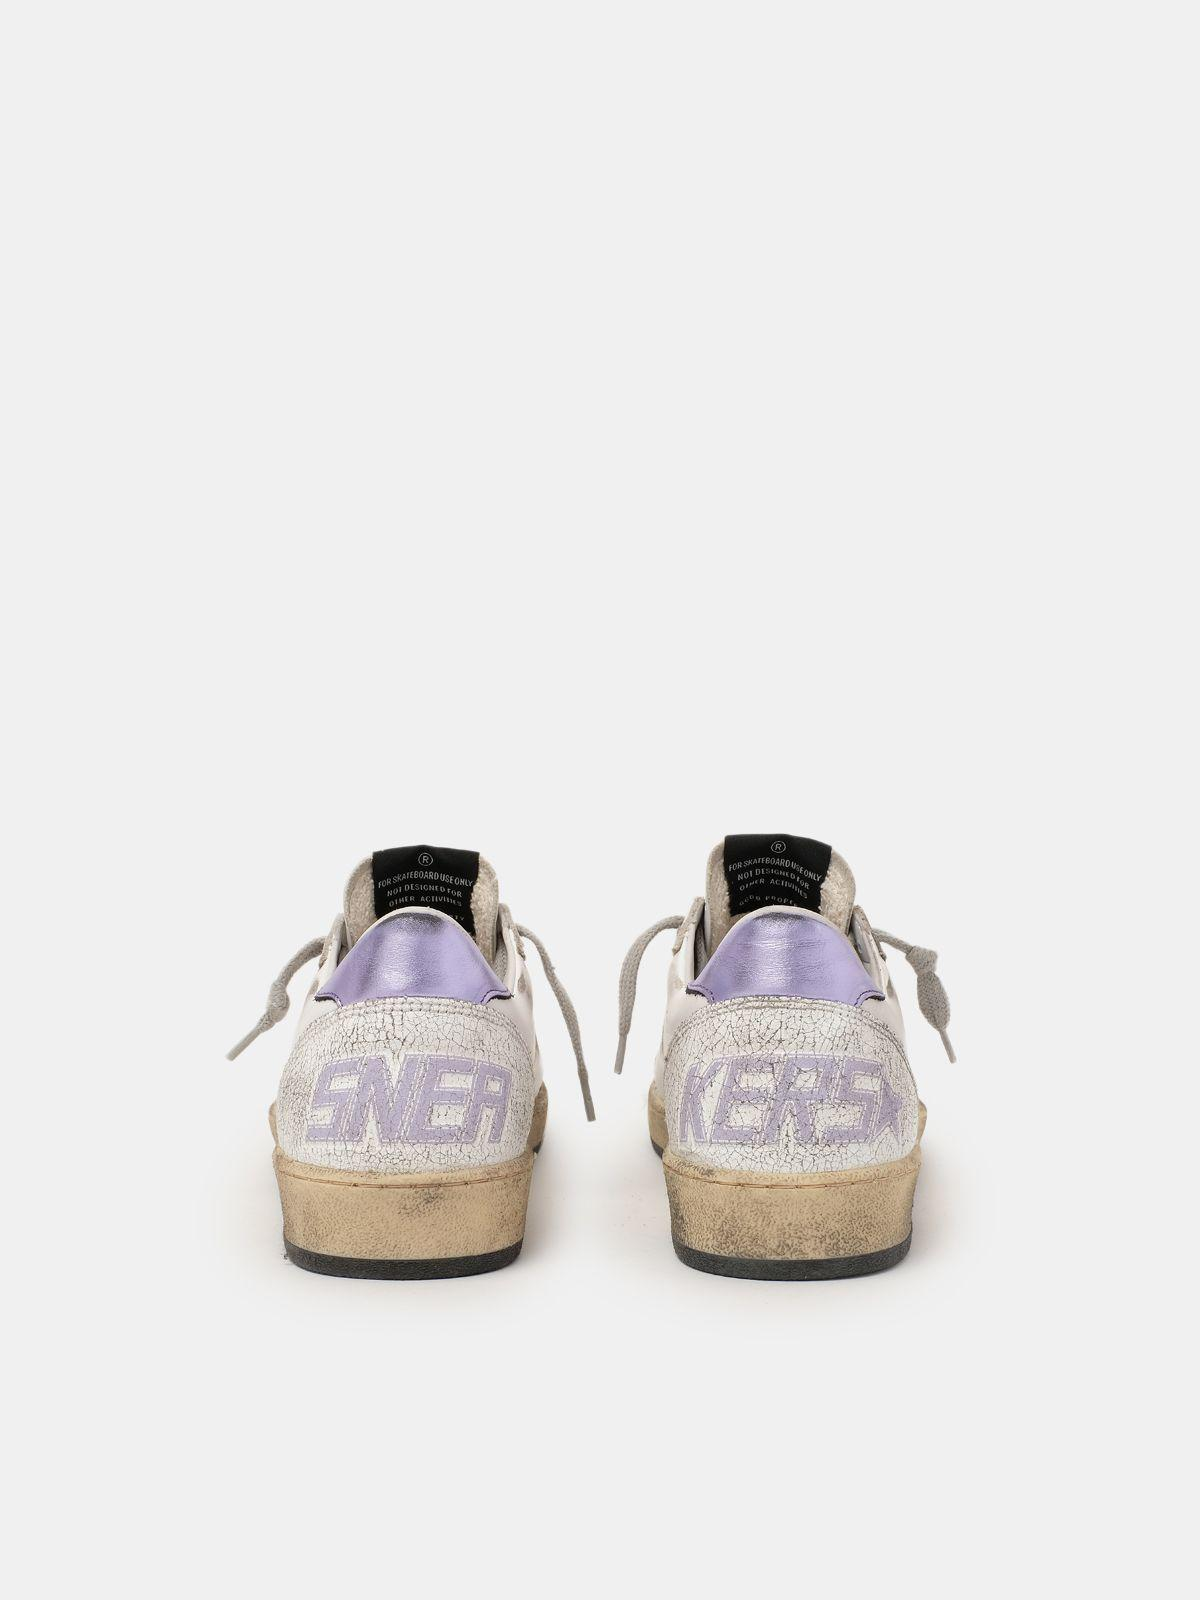 Ball Star sneakers with purple glitter 1